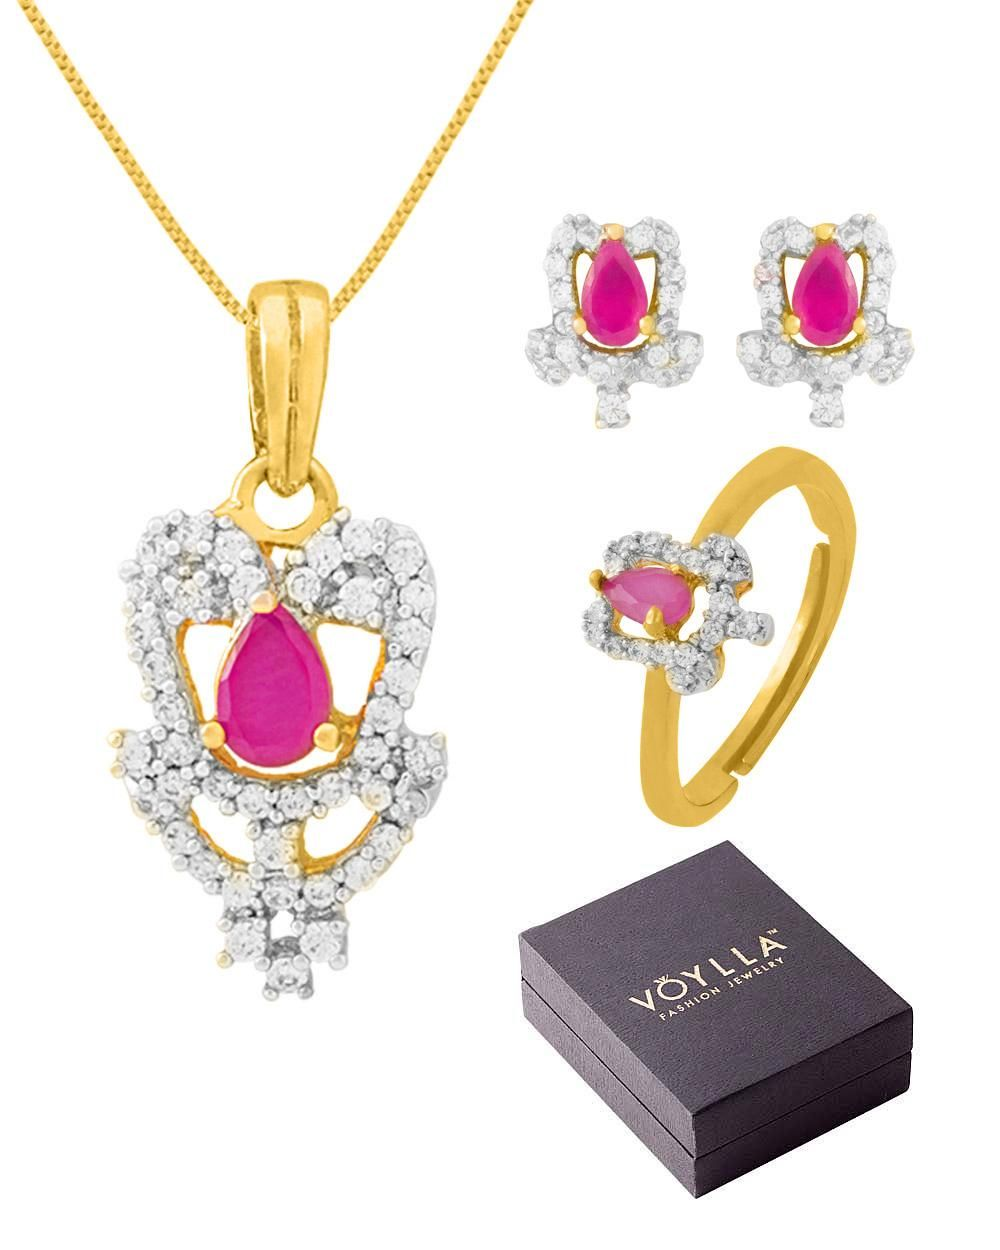 Voylla Floral Design Pendant Set & Adjustable Ring In Box